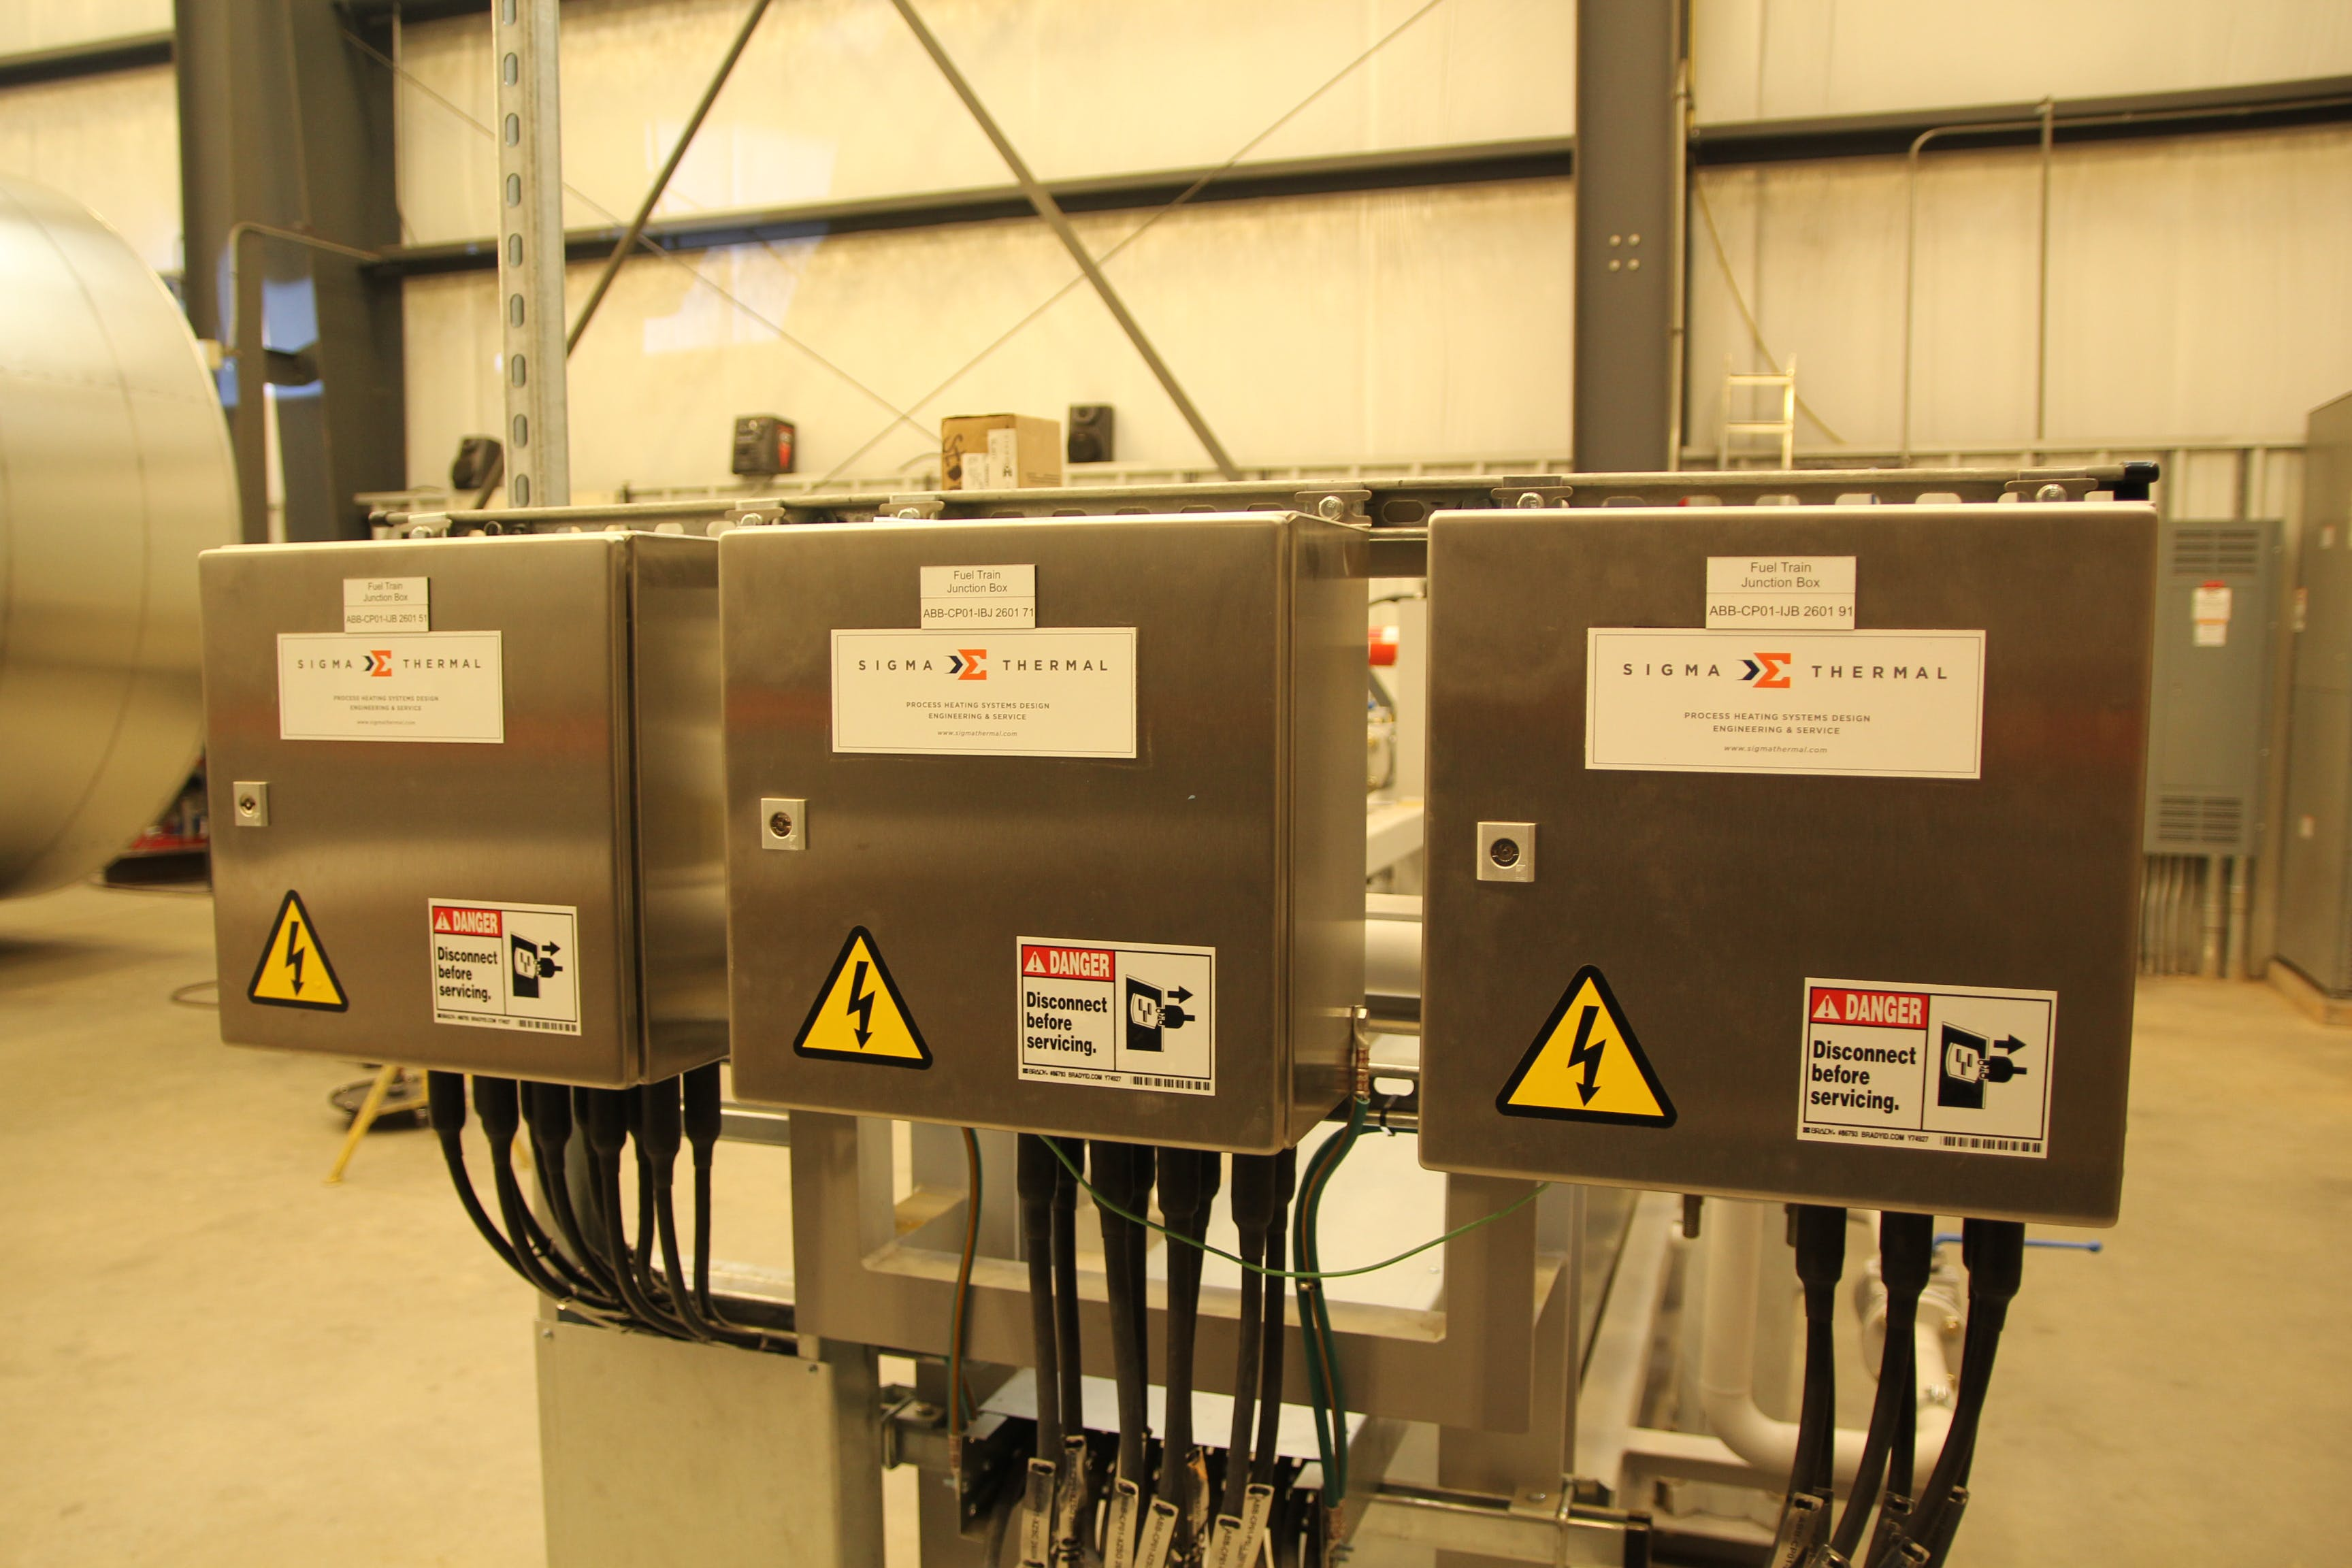 Skid Junction Boxes Control System sold by Sigma Thermal